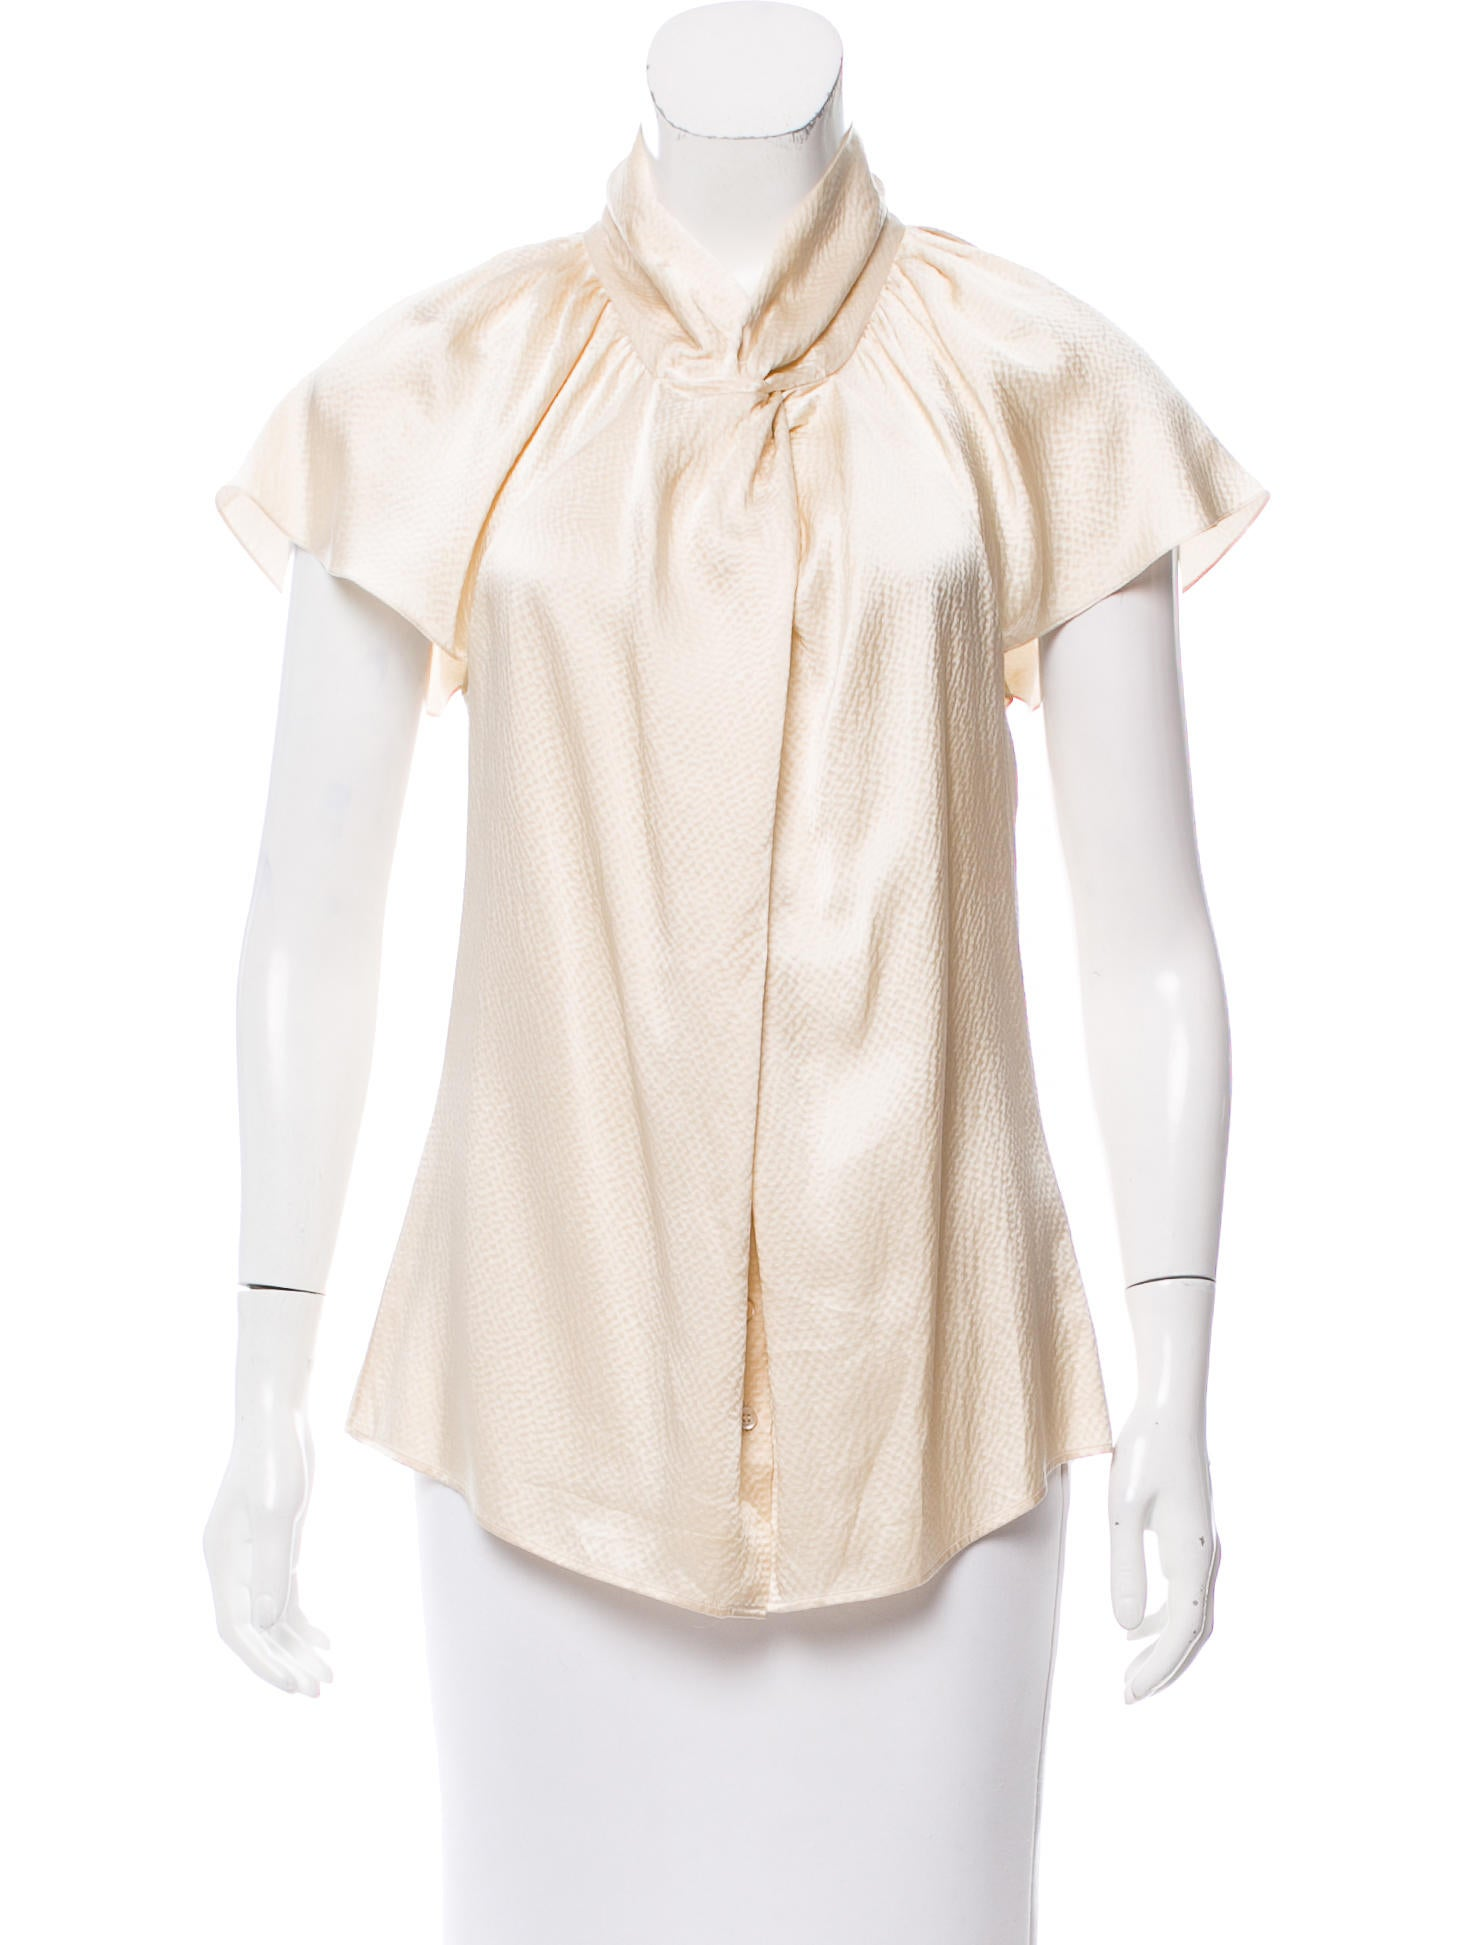 Christian dior silk button up top clothing chr61286 for Christian dior button up shirt